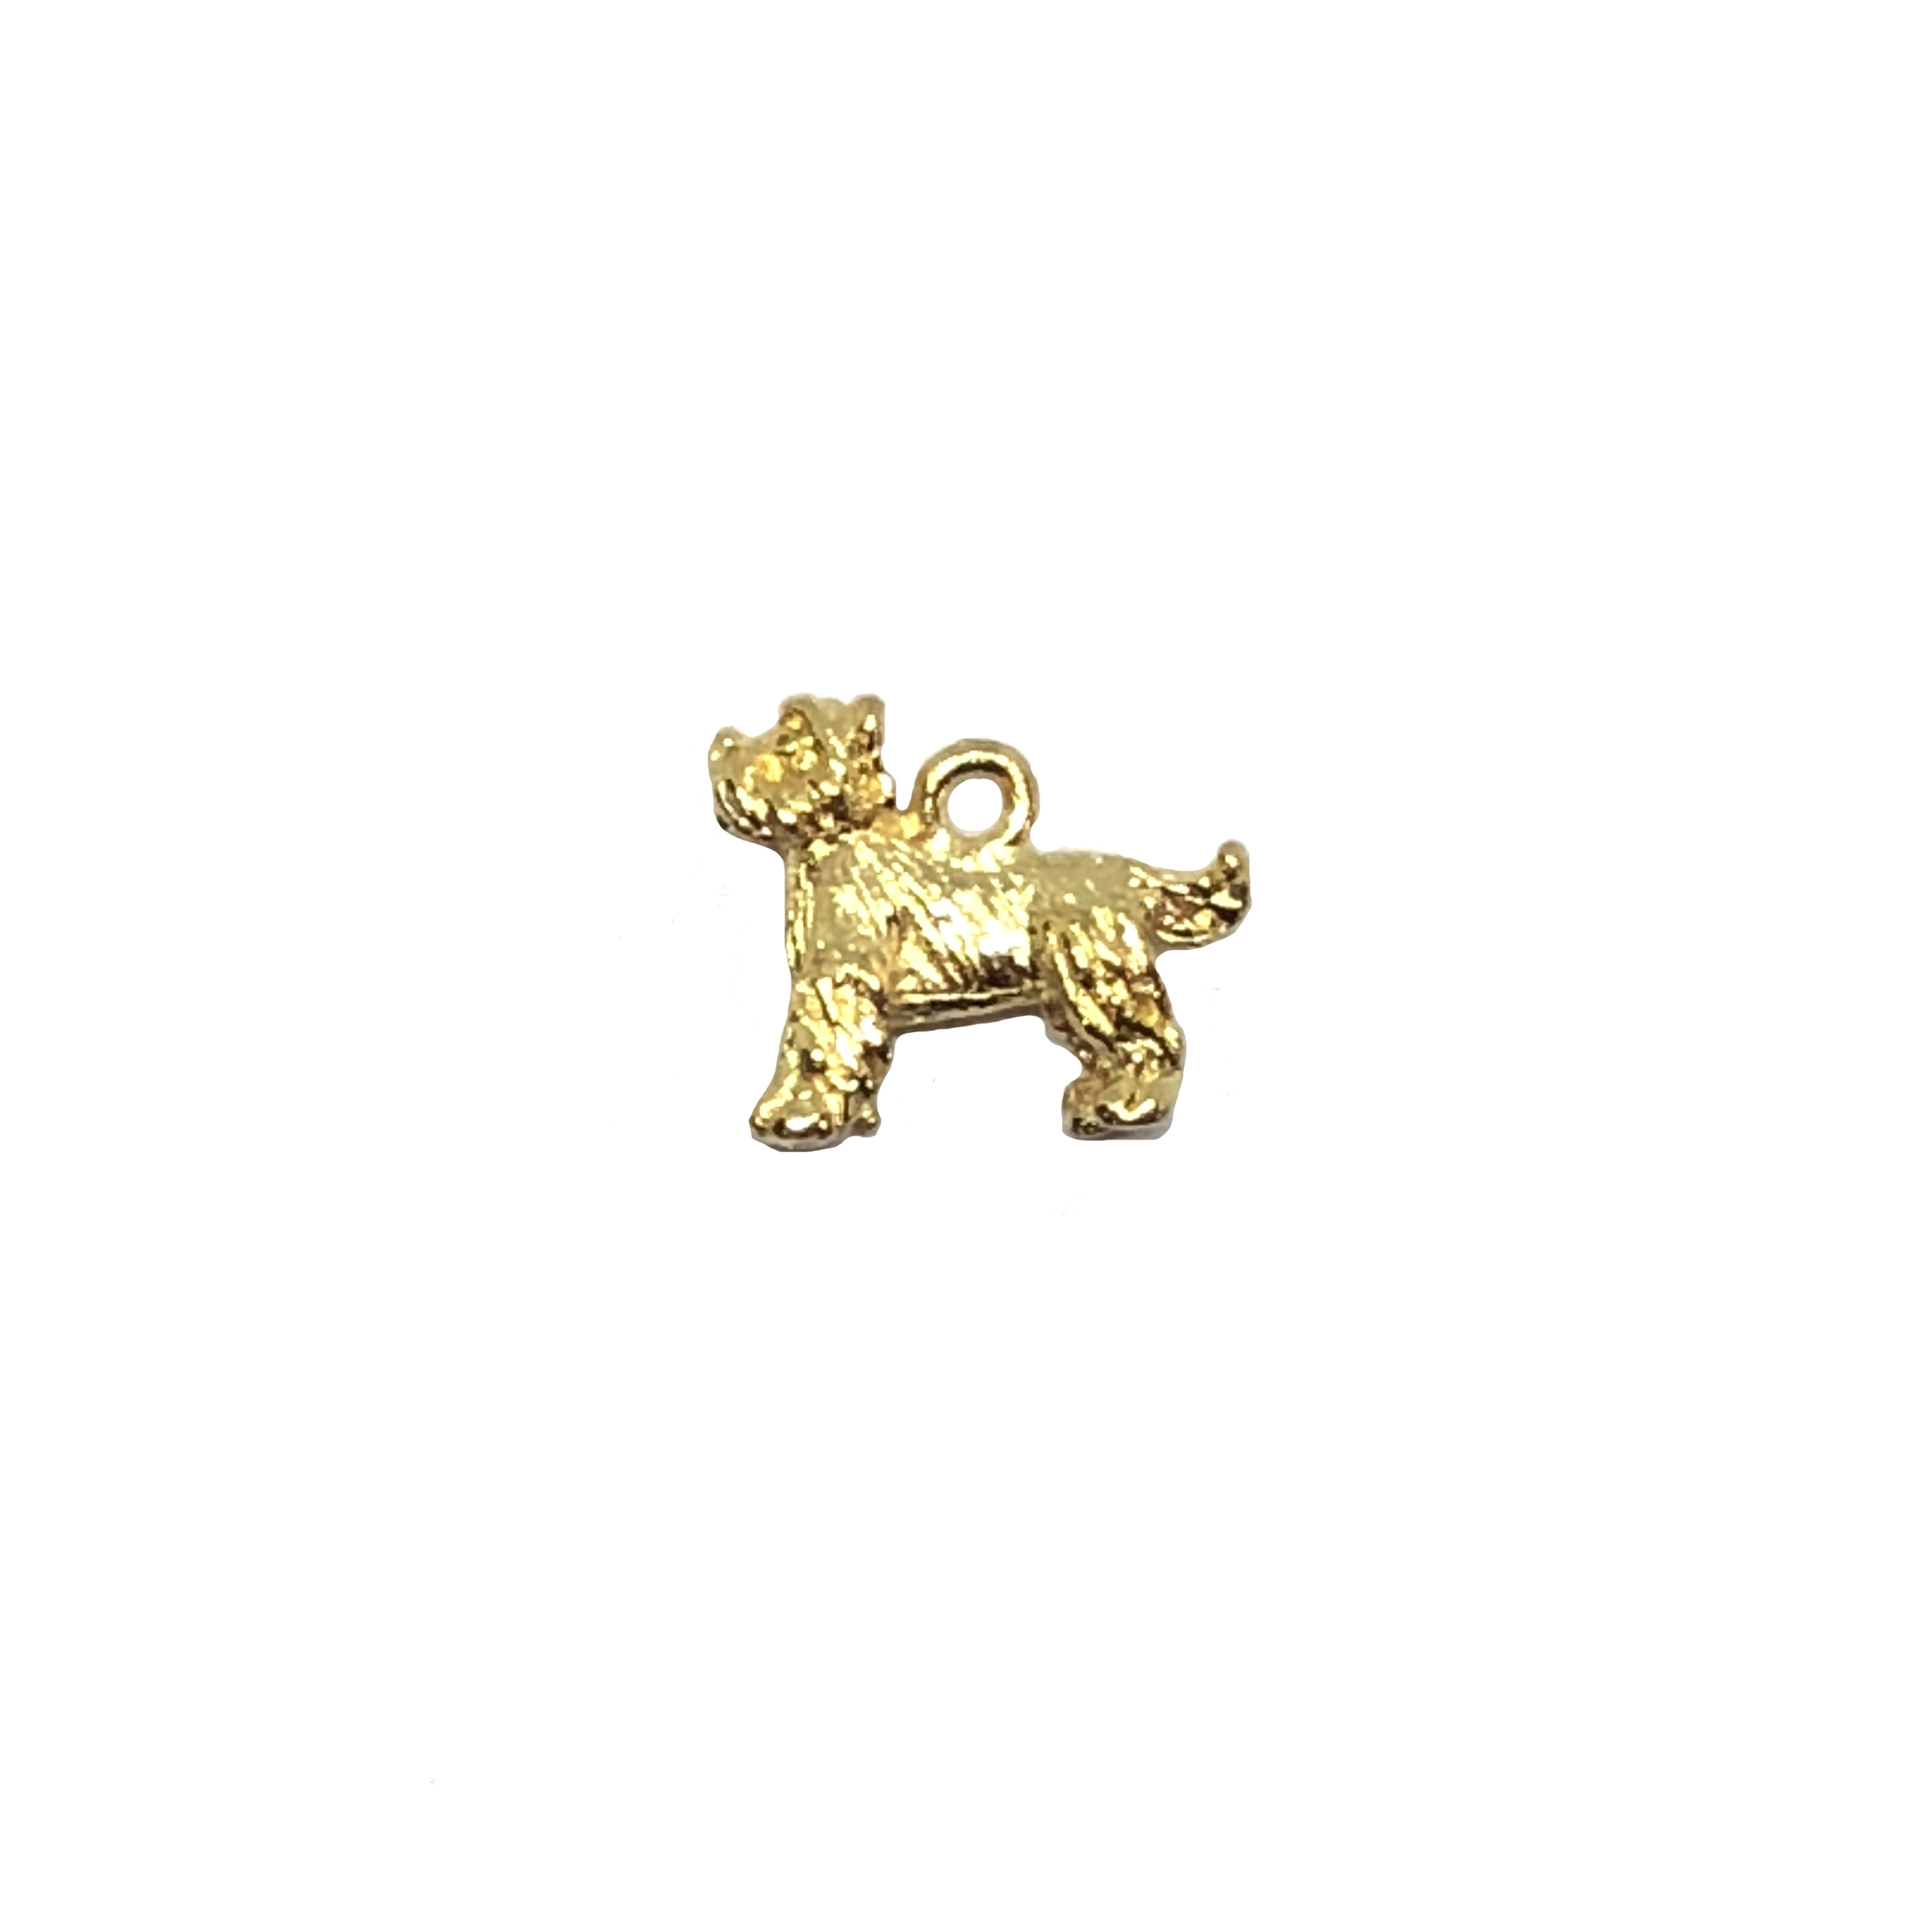 Scottish terrier charm, 22K gold finish pewter, B'sue by 1928, jewelry charm, dog, dog charm, charm, Scottish terrier, gold, lead free pewter, gold finish, US made, designer jewelry, vintage supplies, B'sue Boutiques, 16x12mm, 08528